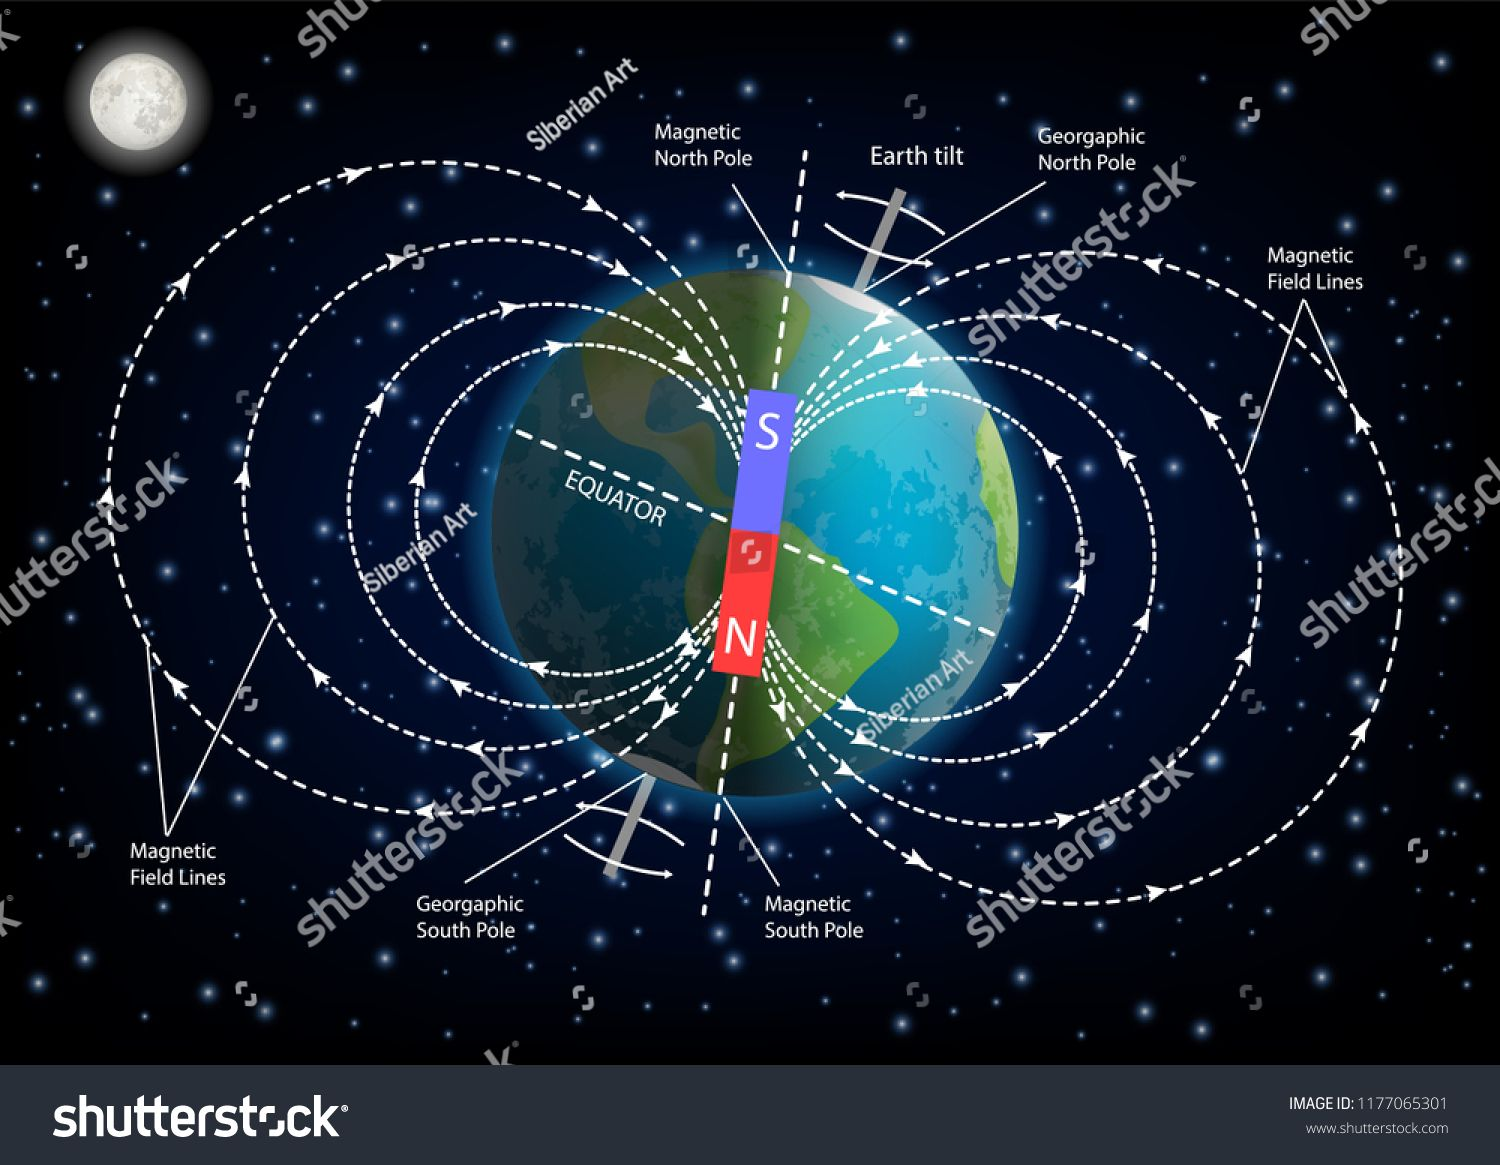 Earth Magnetic Field Or Geomagnetic Field Diagram Vector Illustration Of Planet Earth Surrounded By Mag In 2020 Earth S Magnetic Field Magnetic Field Education Poster